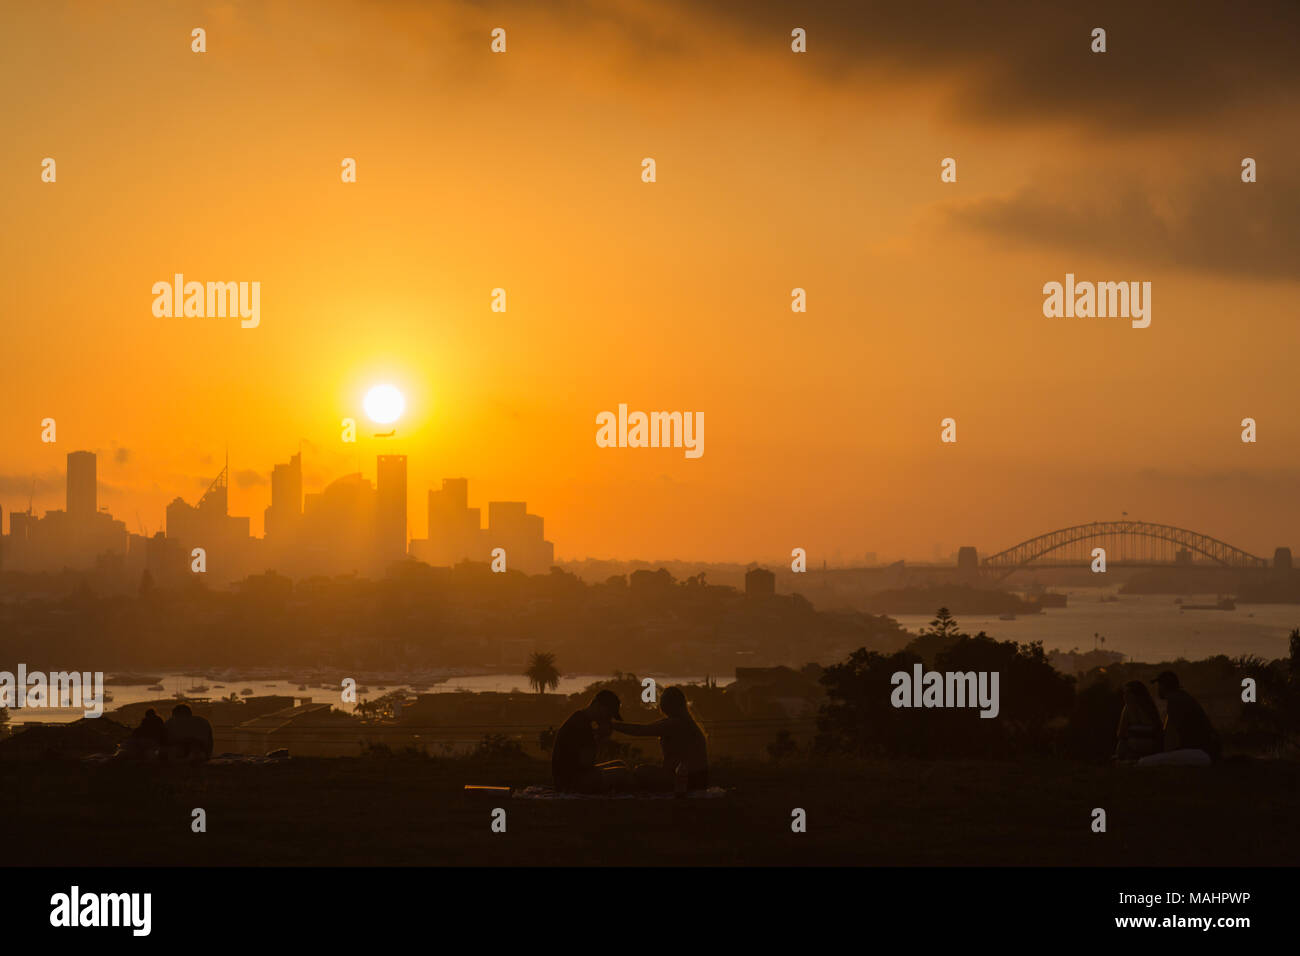 A dramatic sunset at Dudley Page Reserve, Eastern Suburbs, Sydney. Great views of the Sydney Skyline at sunset. - Stock Image